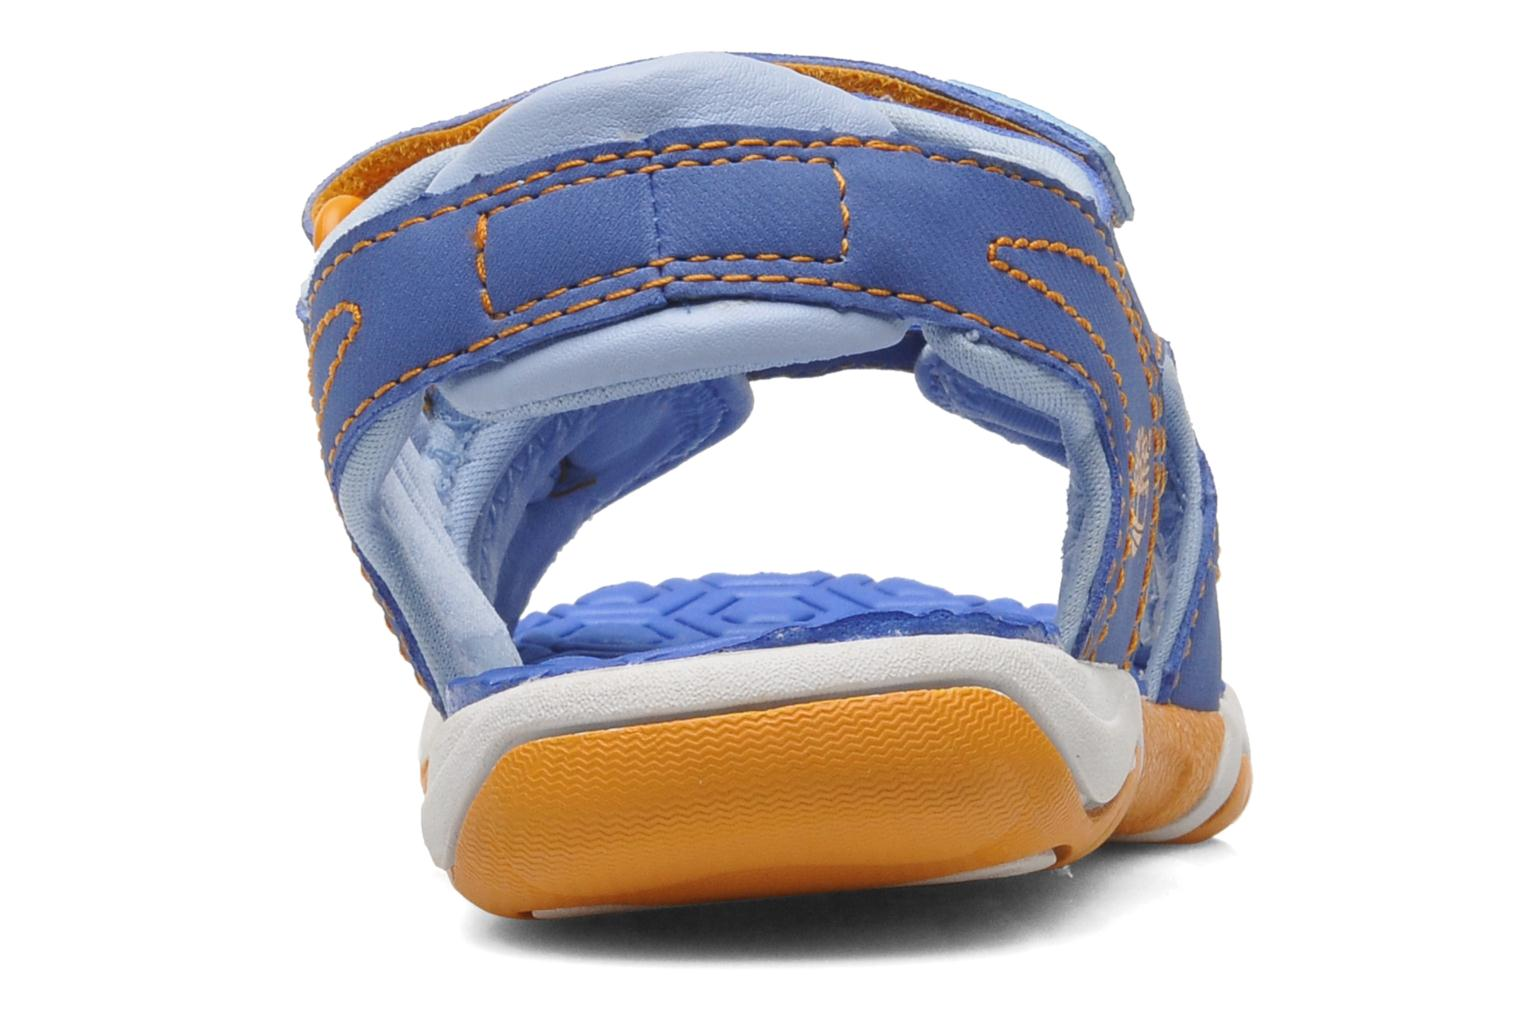 Adventure Seeker 2 Strap RYL/ORG BLUE